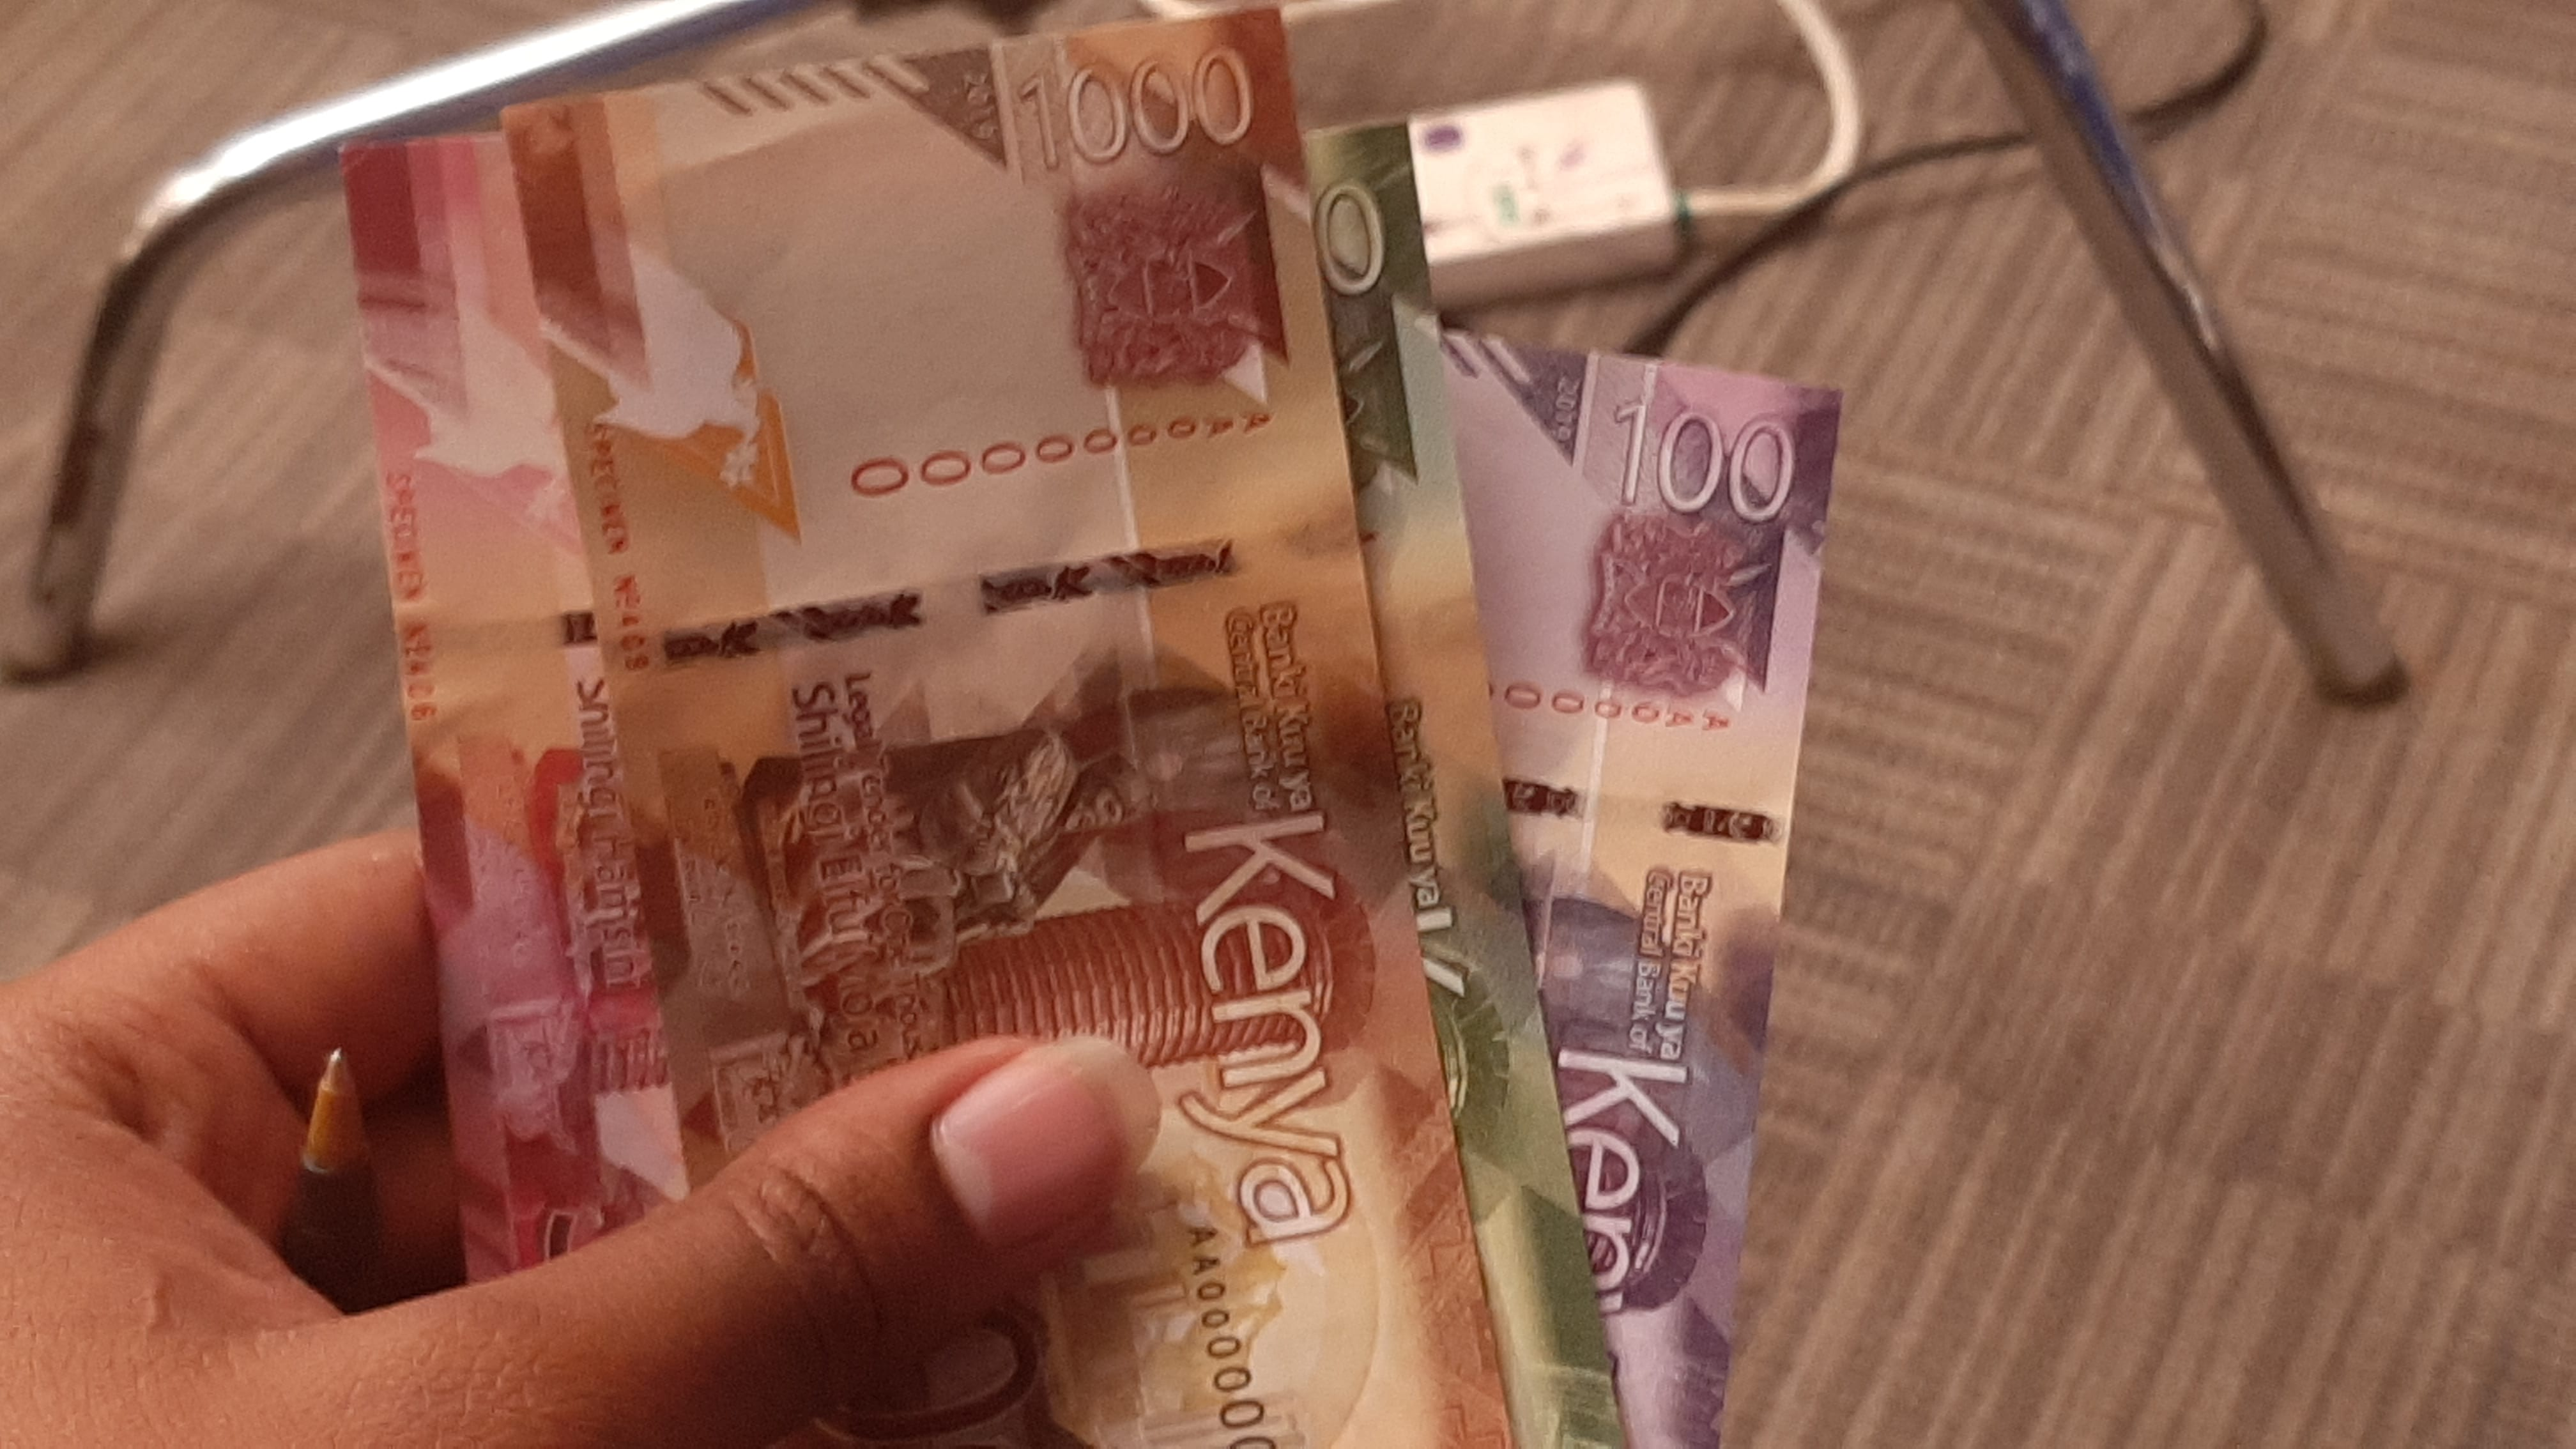 How to tell genuine new banknotes from fake ones - Business